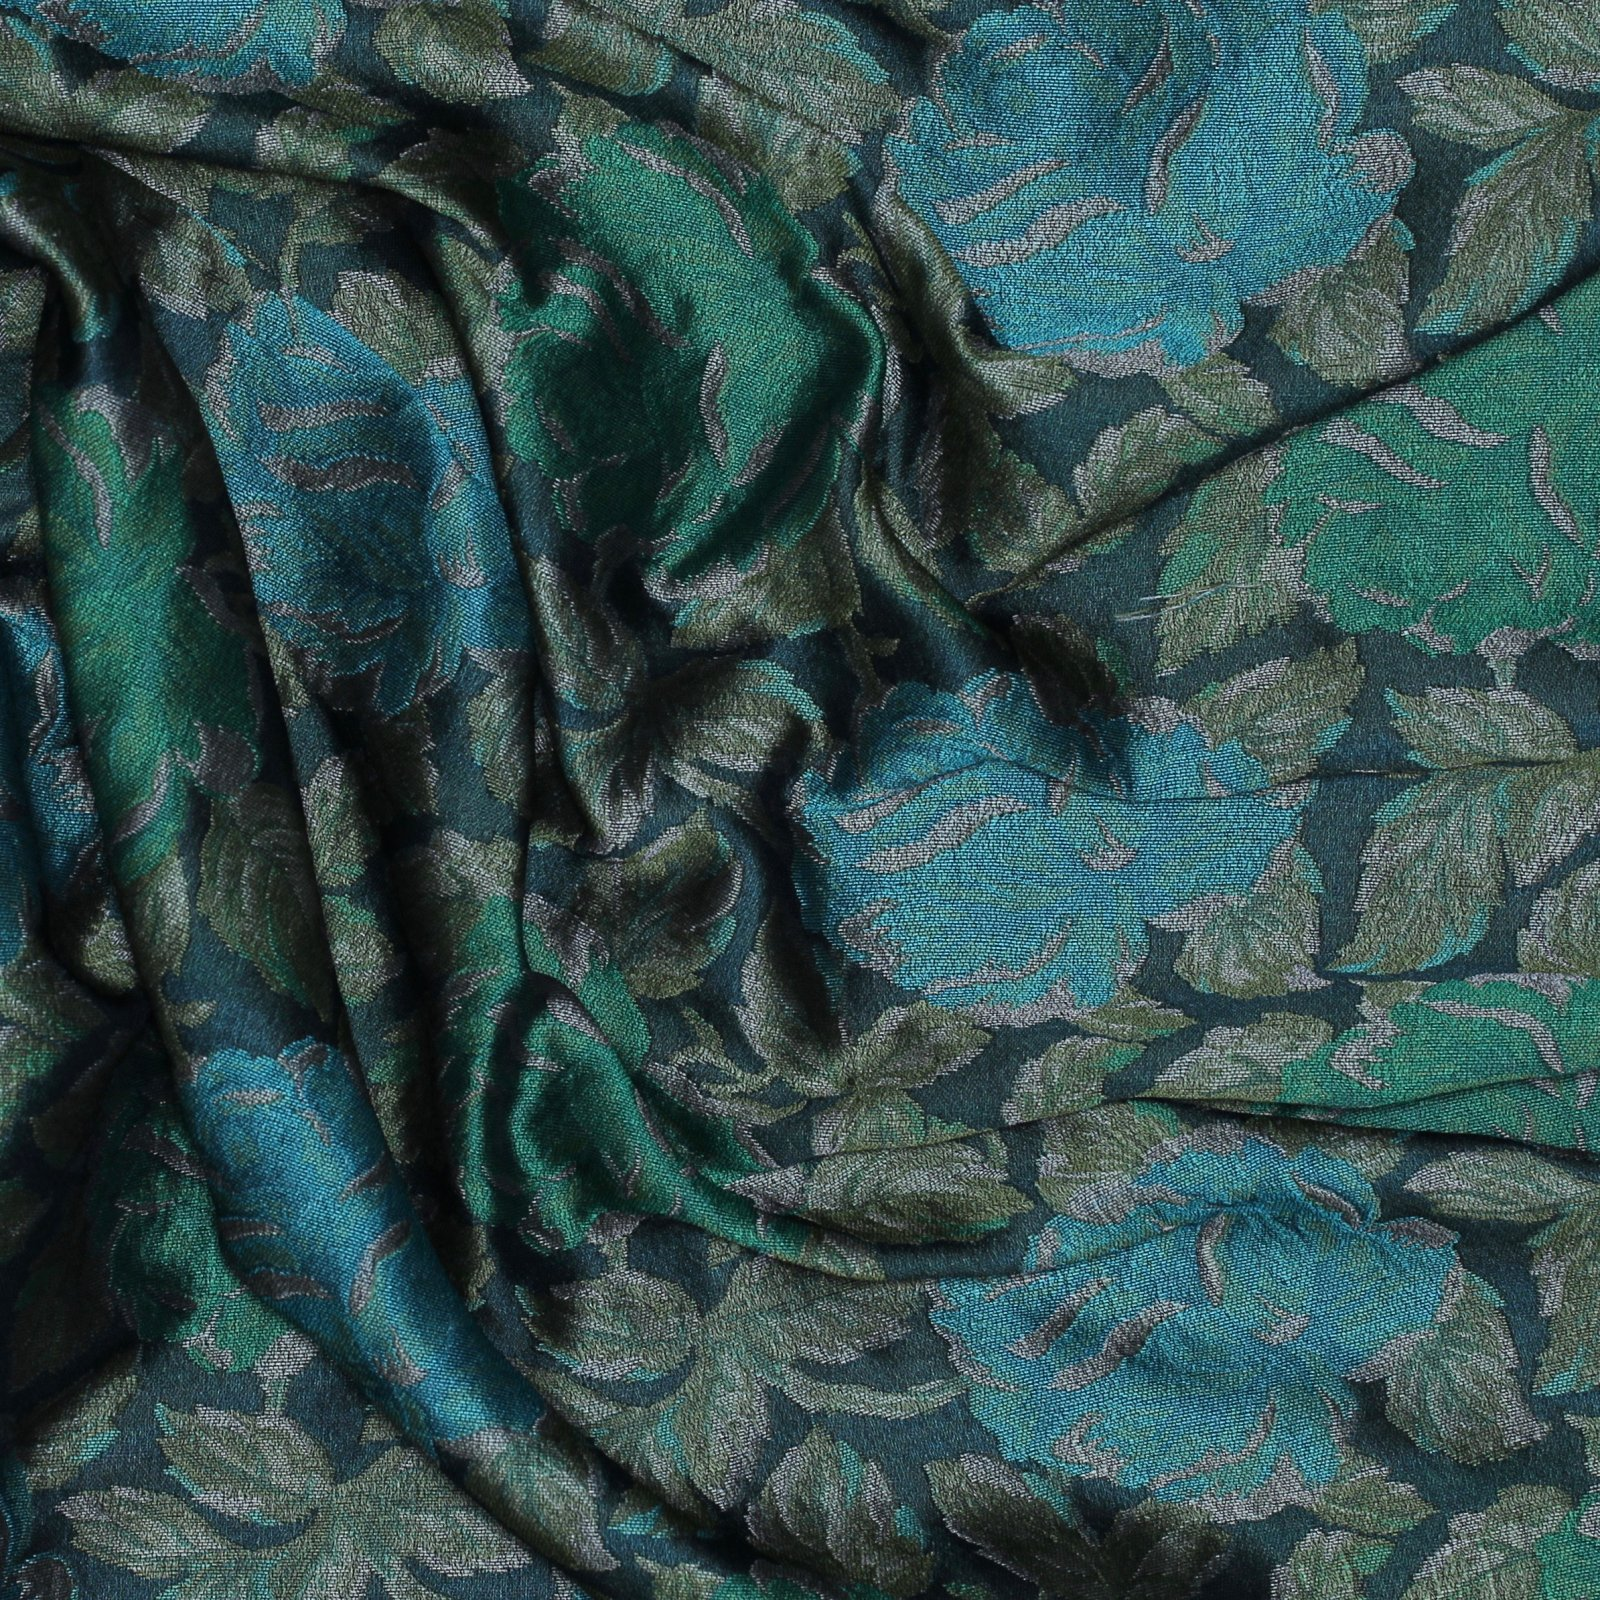 Green/Teal Floral Italian Brocade